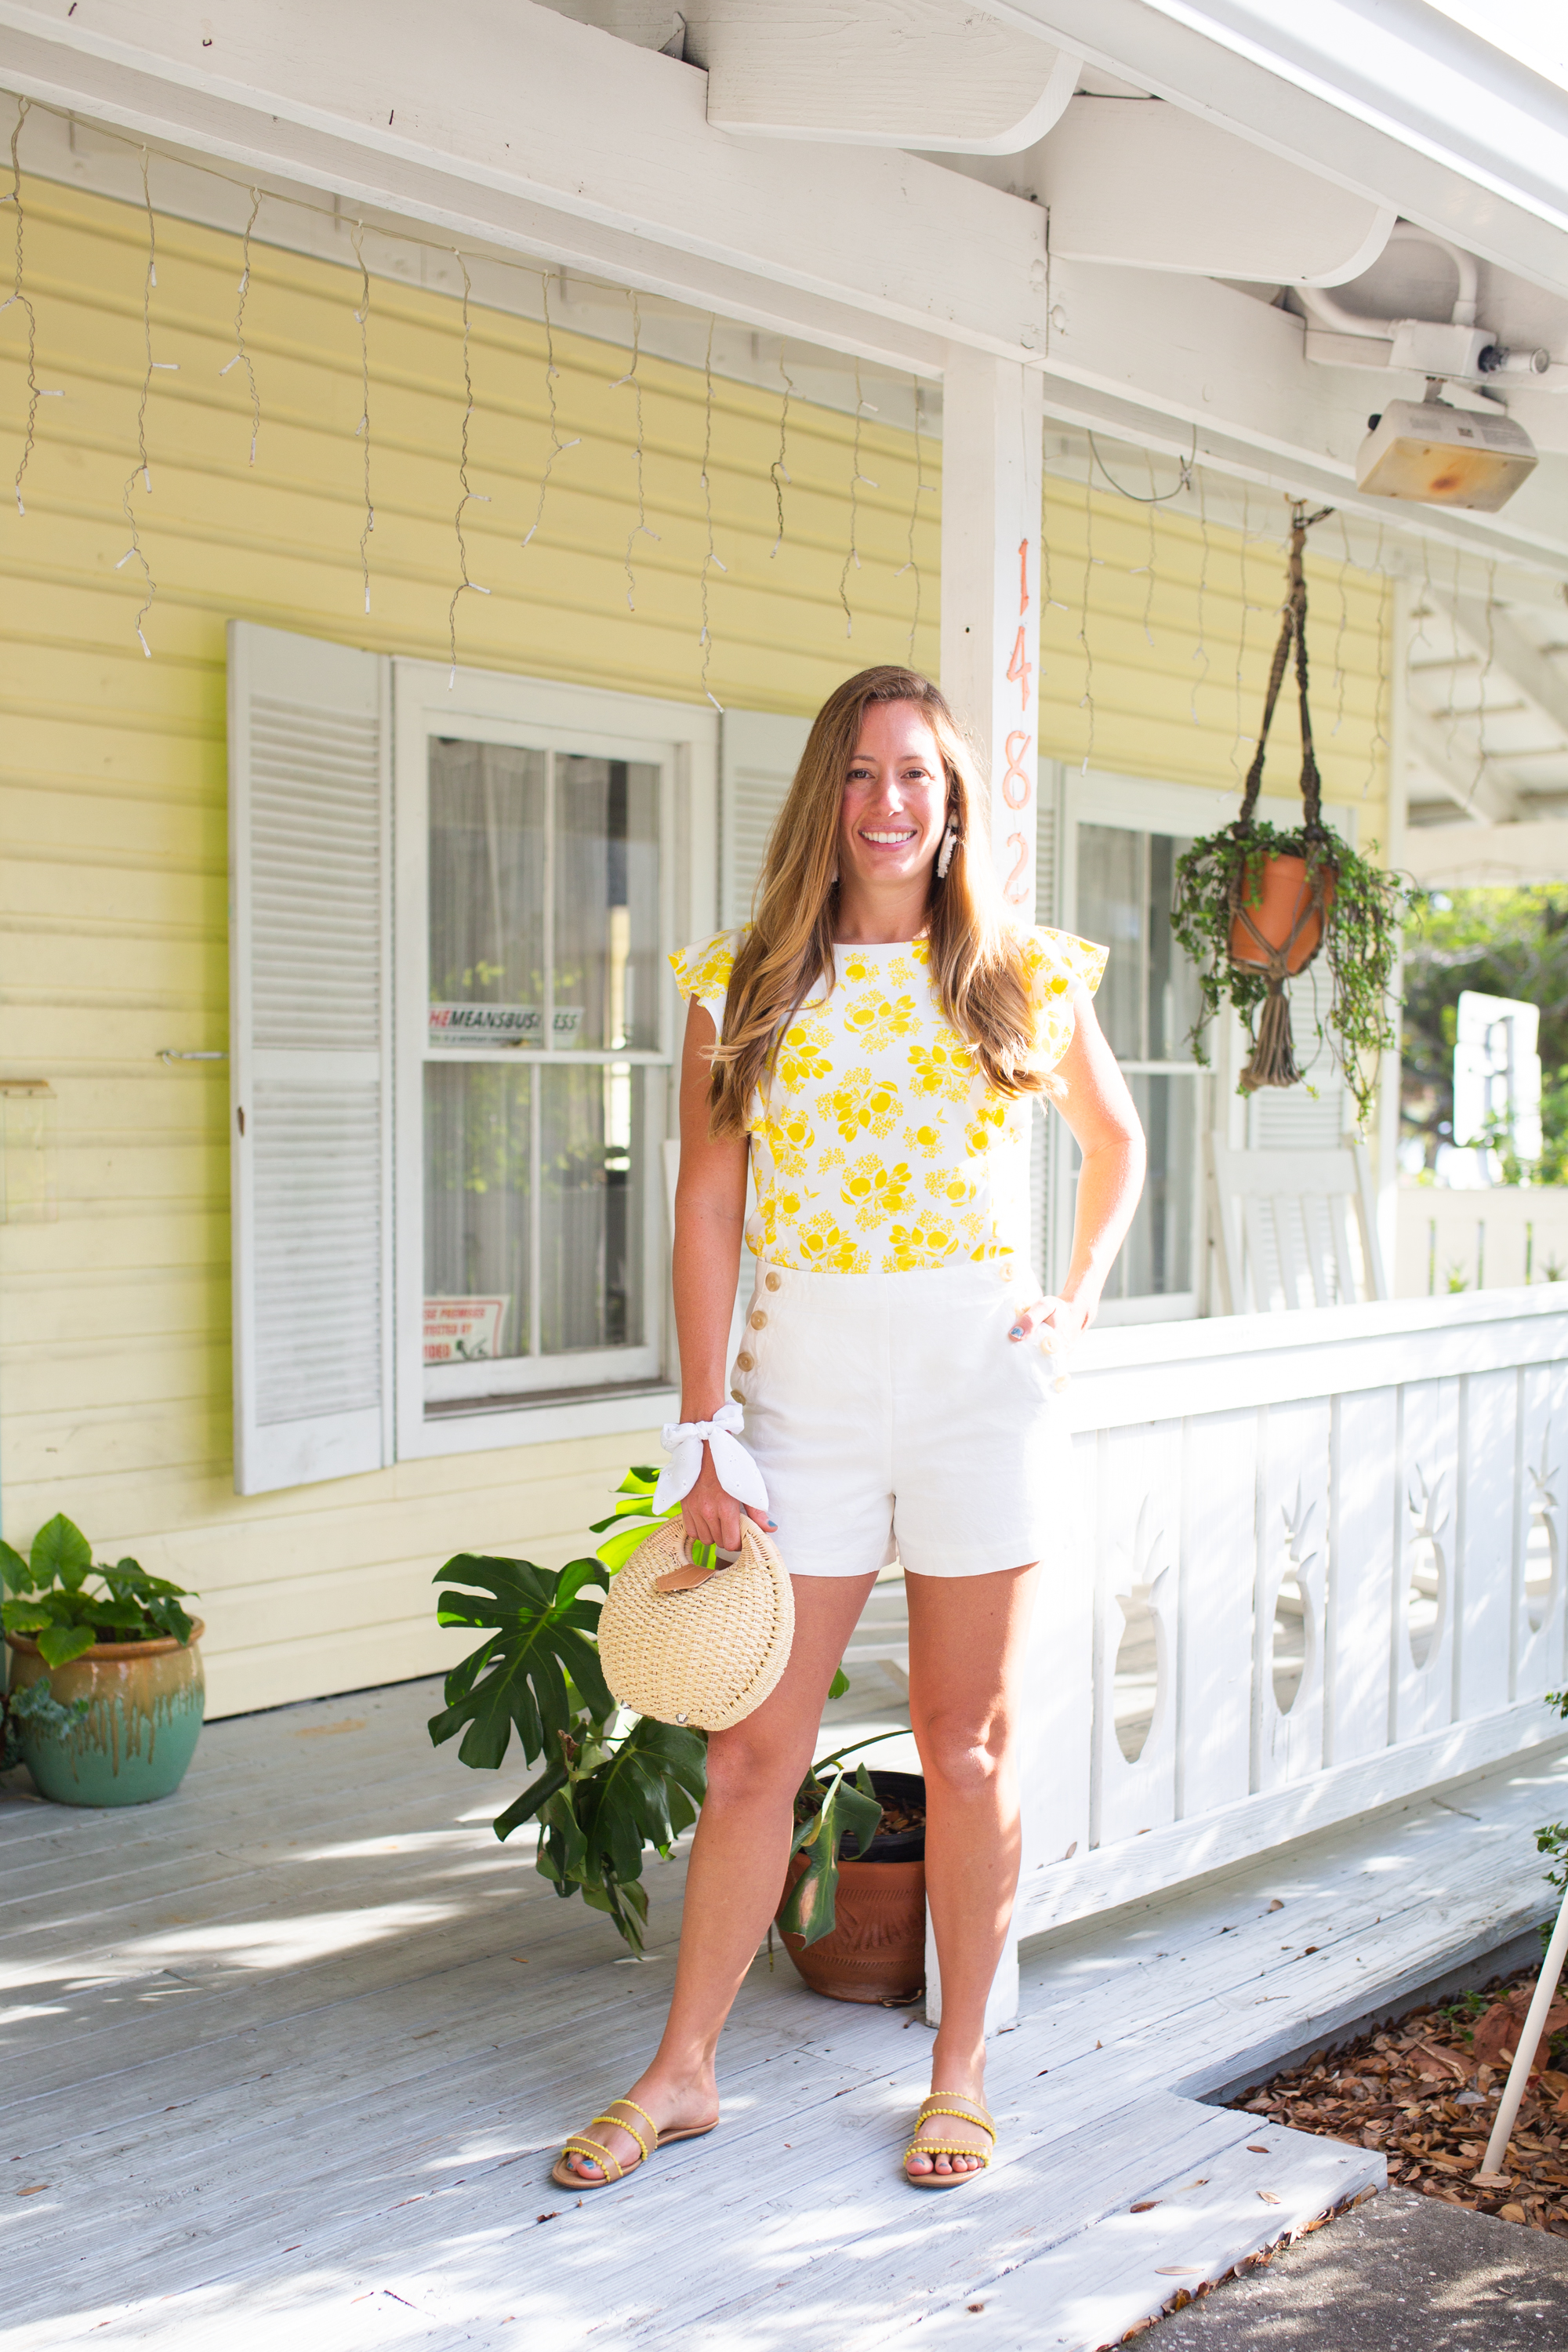 End of Summer Style / Citrus Top / Ruffle Top / Casual Summer Outfit / Classic Summer Outfit / Preppy Style / Sailor Shorts / White Shorts / Straw Bag - Sunshine Style - A Preppy Fashion and Coastal Lifestlyle Blog